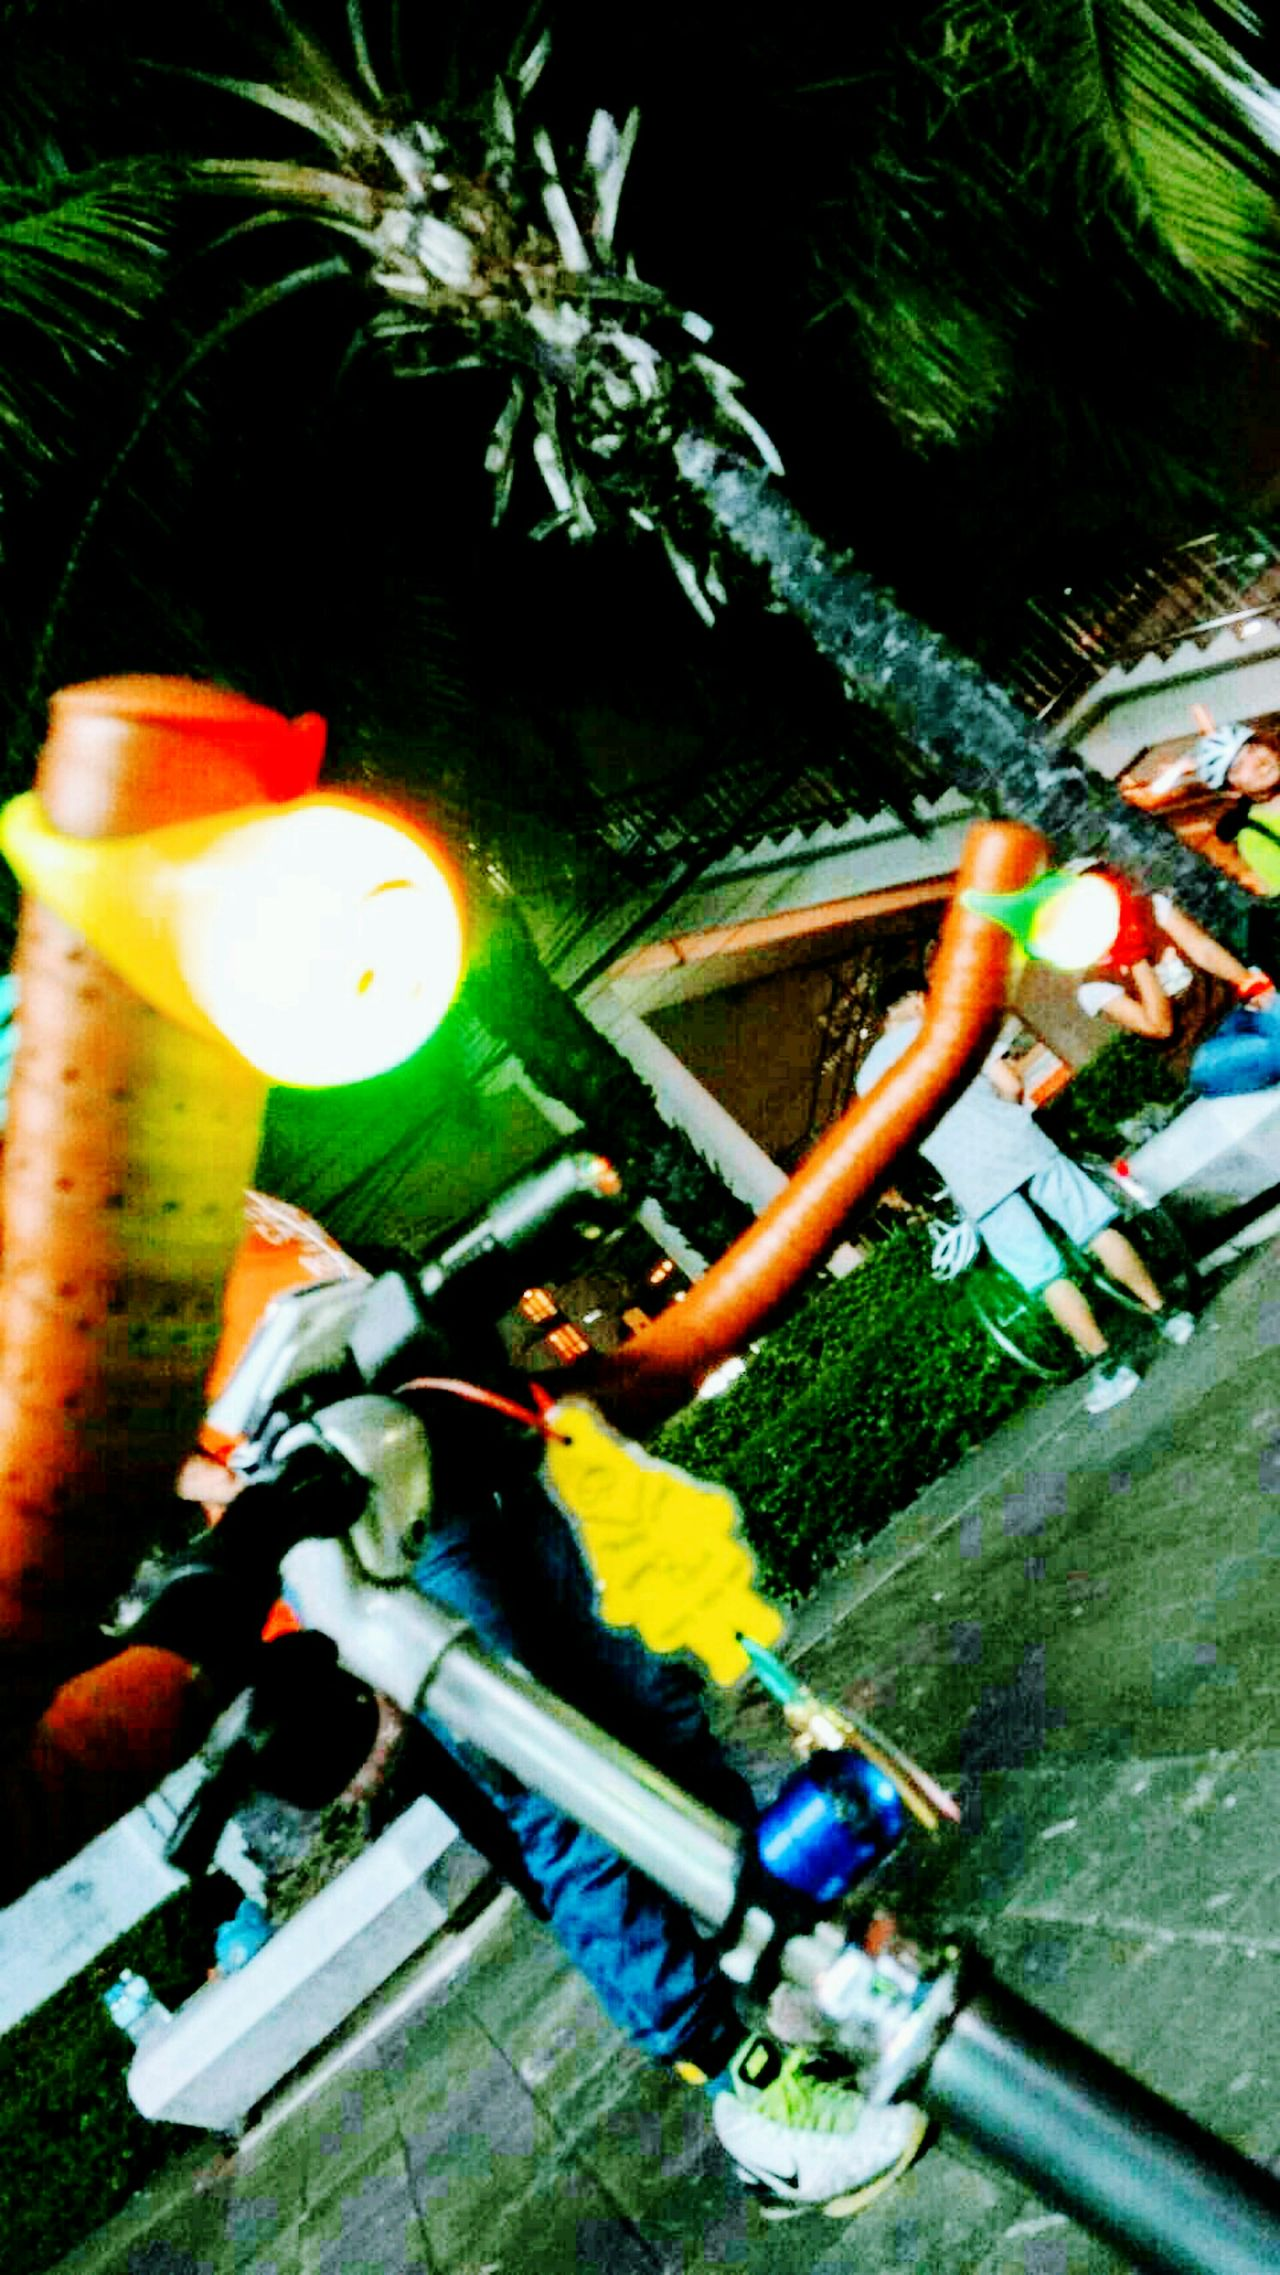 Bicycle Bicycle Parking Bicycle Handlebar Outdoors Close-up Focus On Foreground Multi Colored Low Angle View Travel Destinations Travelling Thailand Full Frame Scenics Landscape No People Night Night Lights Nightphotography Light Lighting Equipment Light In The Darkness Lighting Enjoying Life Hello World Beauty In Nature Nature